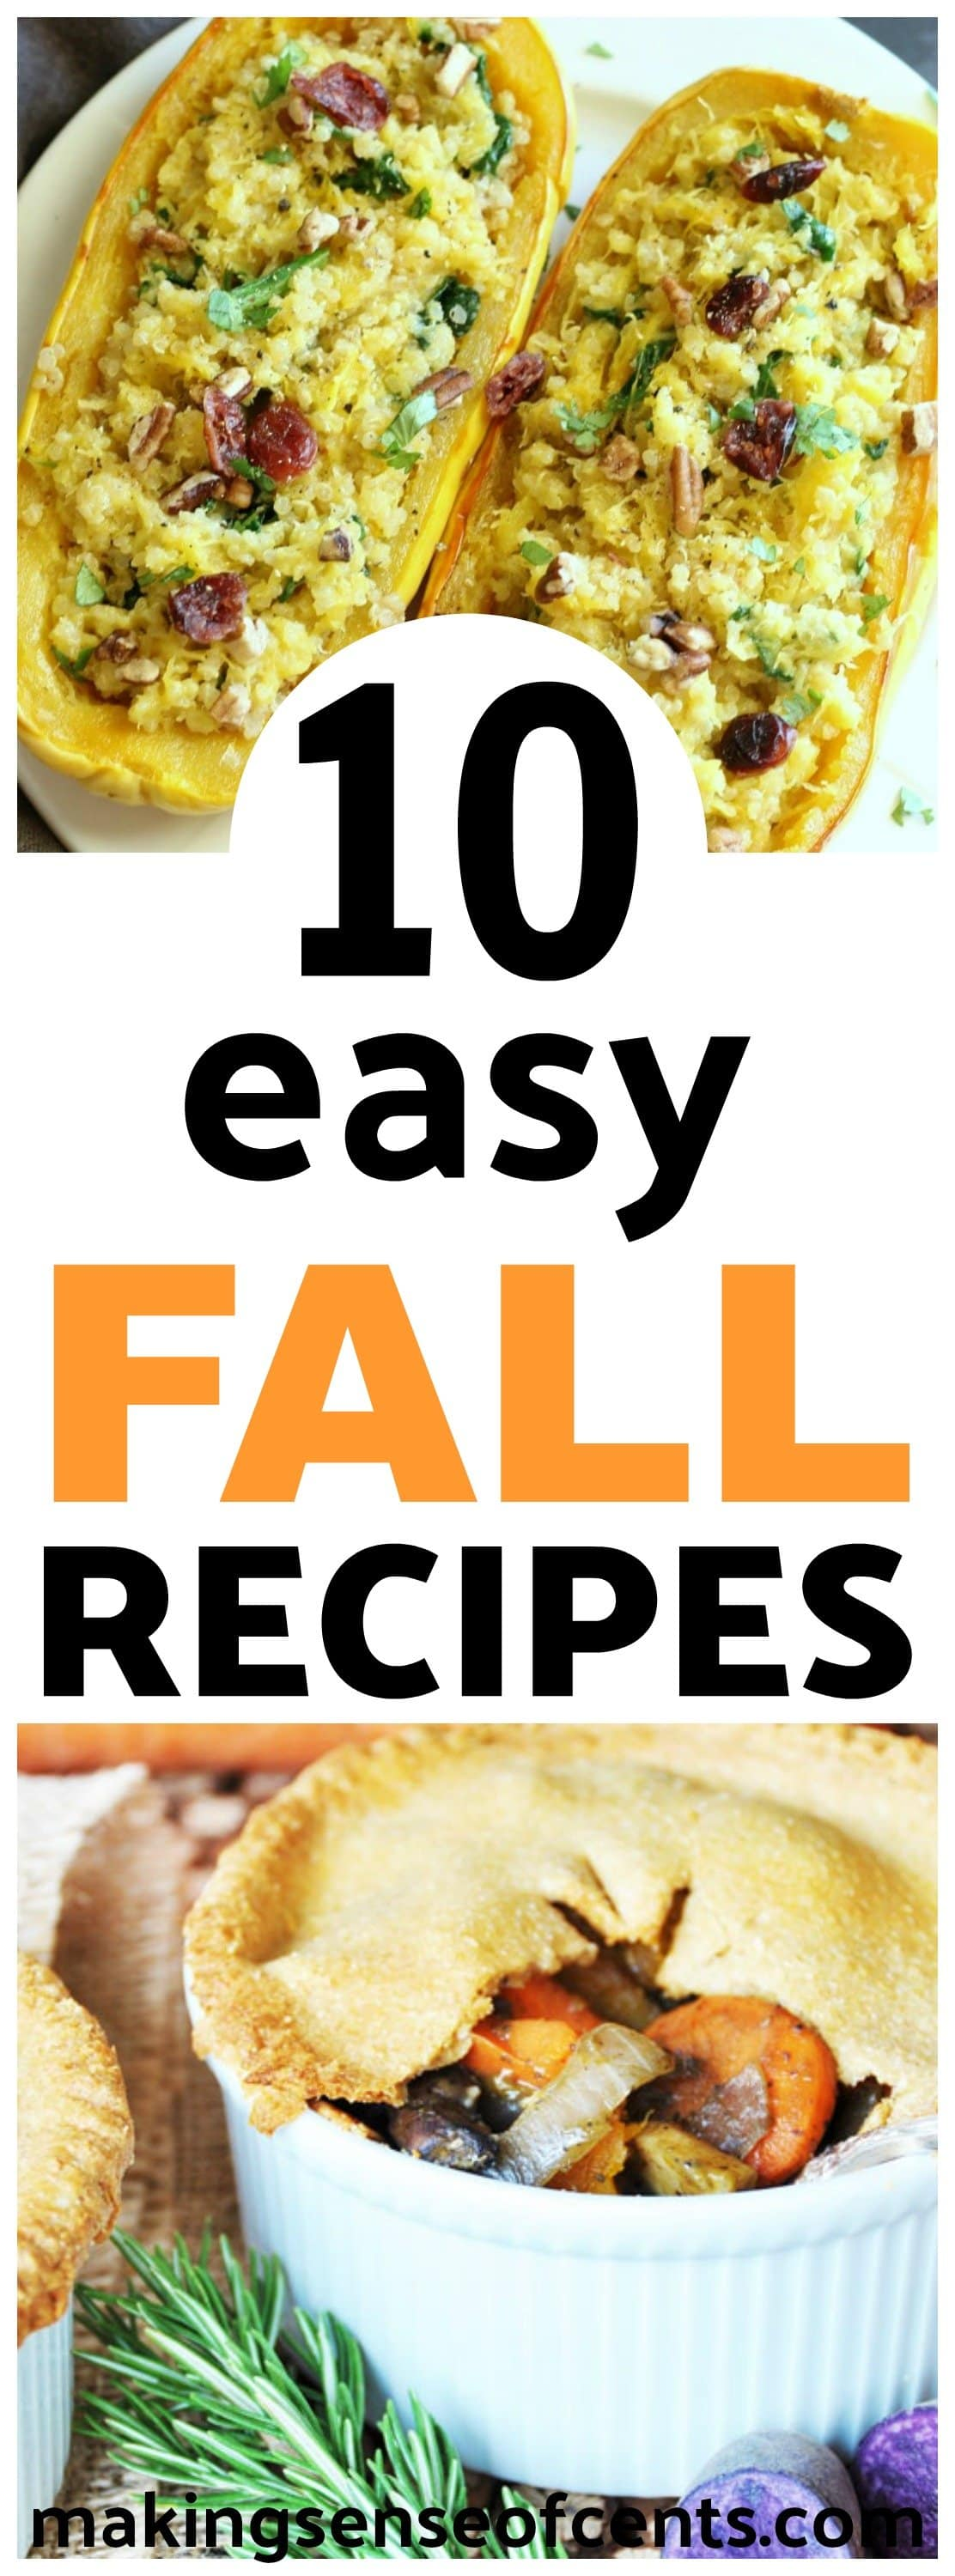 Looking to add some delicious, easy fall recipes to your meal plan? Here are 10 healthy, easy, dinner, fall recipes. #fallrecipes #falldinneridas #easyfallrecipes